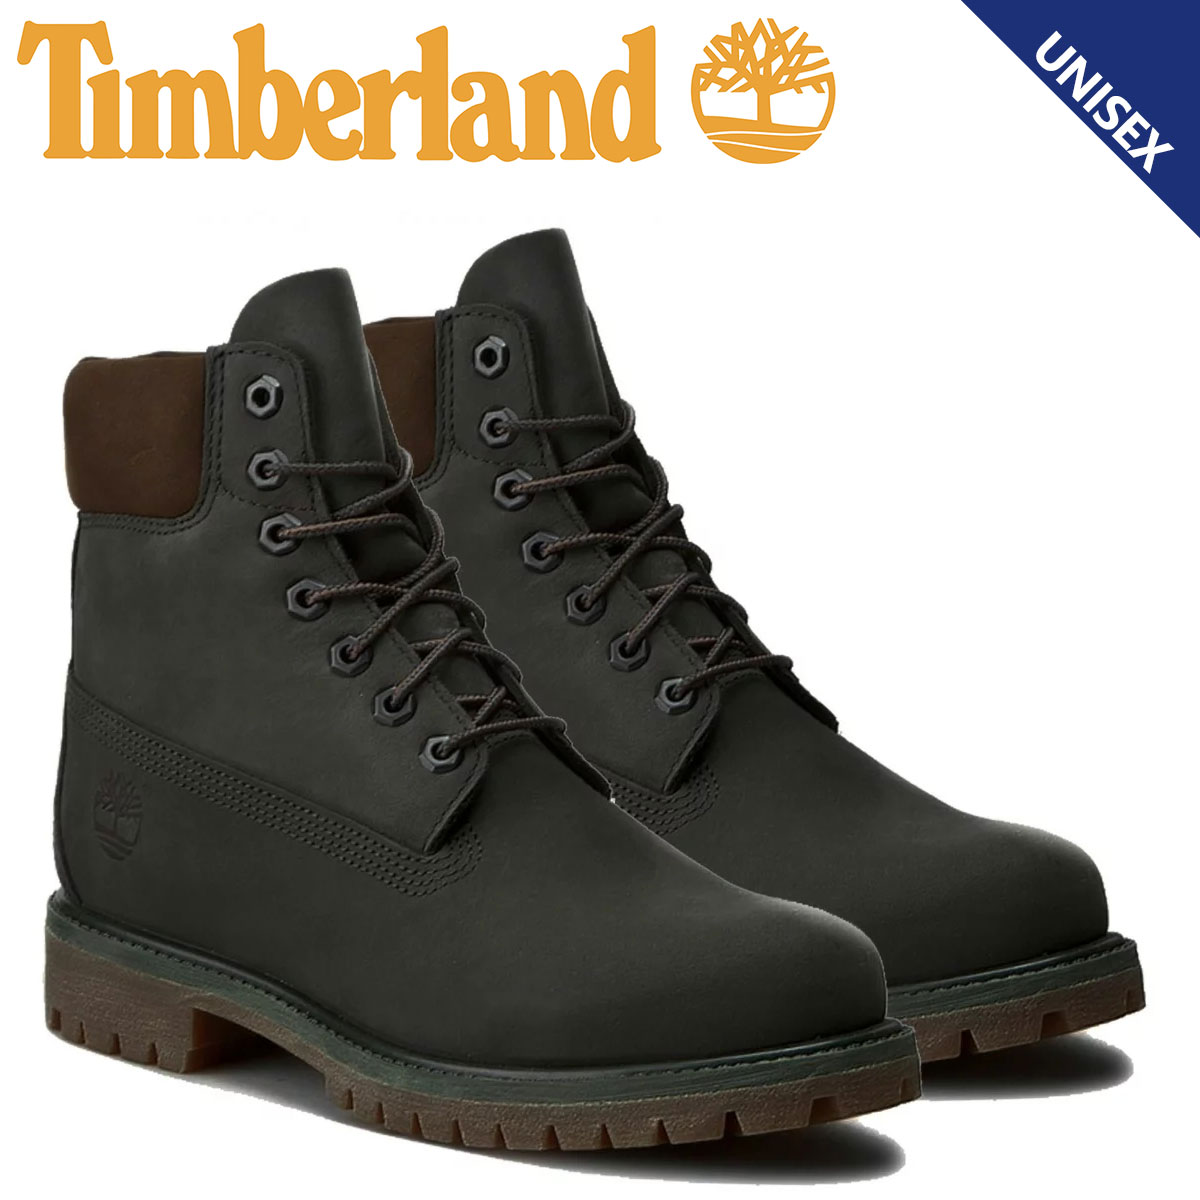 c0846e6bac7d Timberland boots men s Timberland 6INCHI 6 inch premium boots INCH PREMIUM  WATERPROOF BOOTS A17Q4 W wise waterproof grey  9 16 new in stock